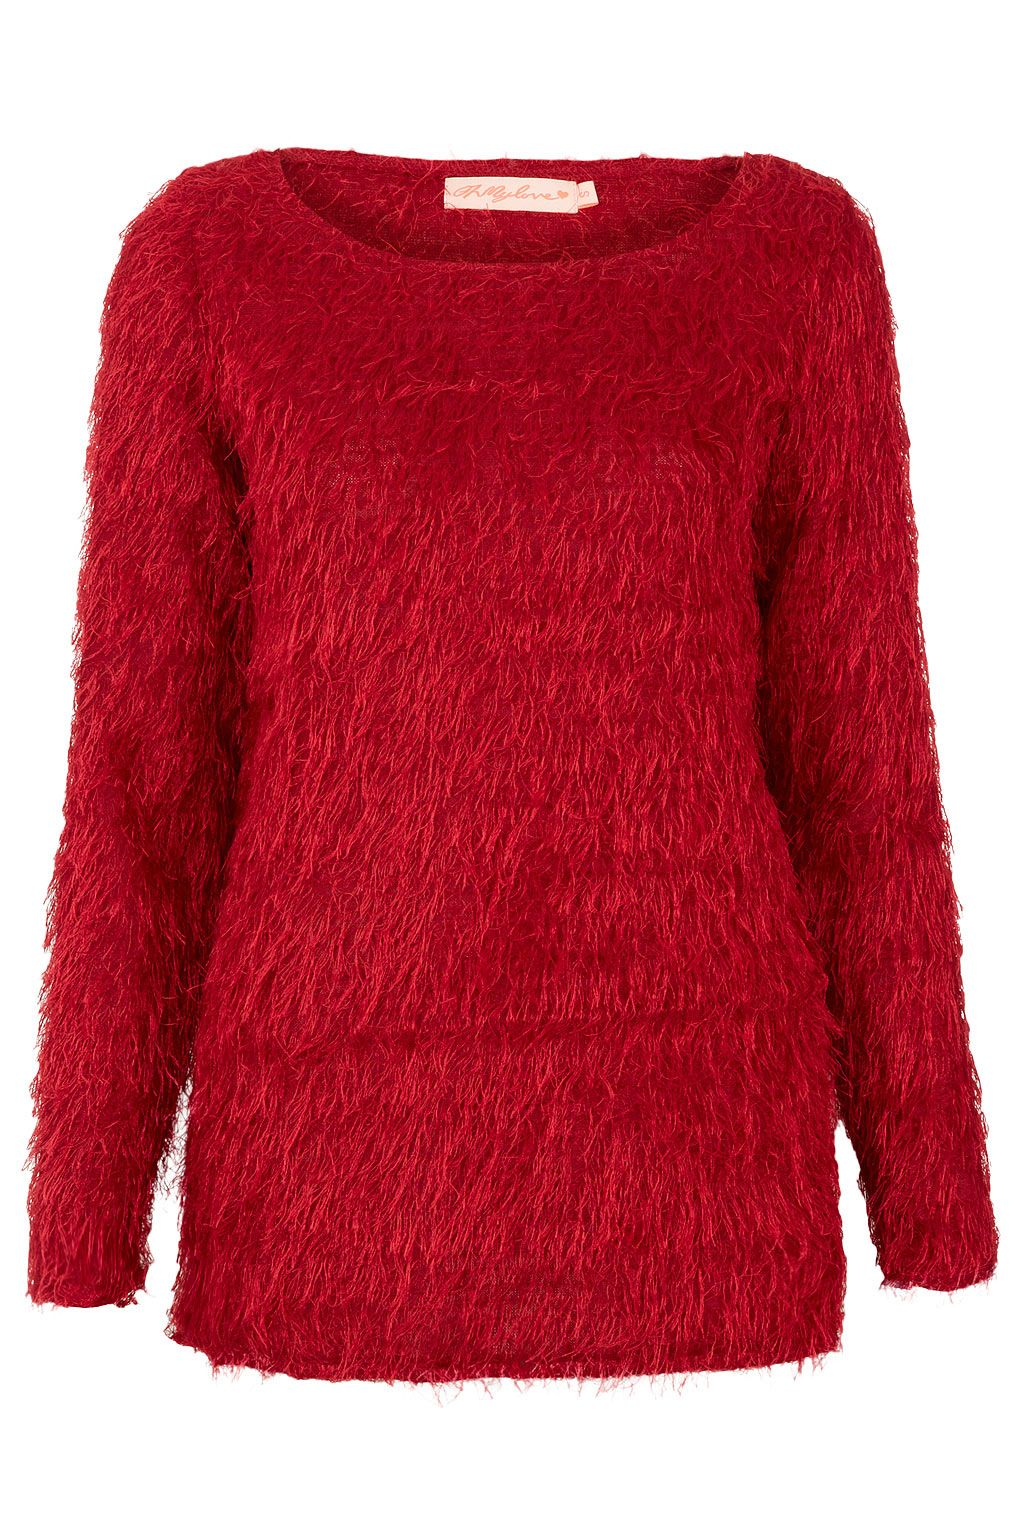 Red Pullover | Oh My Love | Topshop | clothing | Pinterest ...